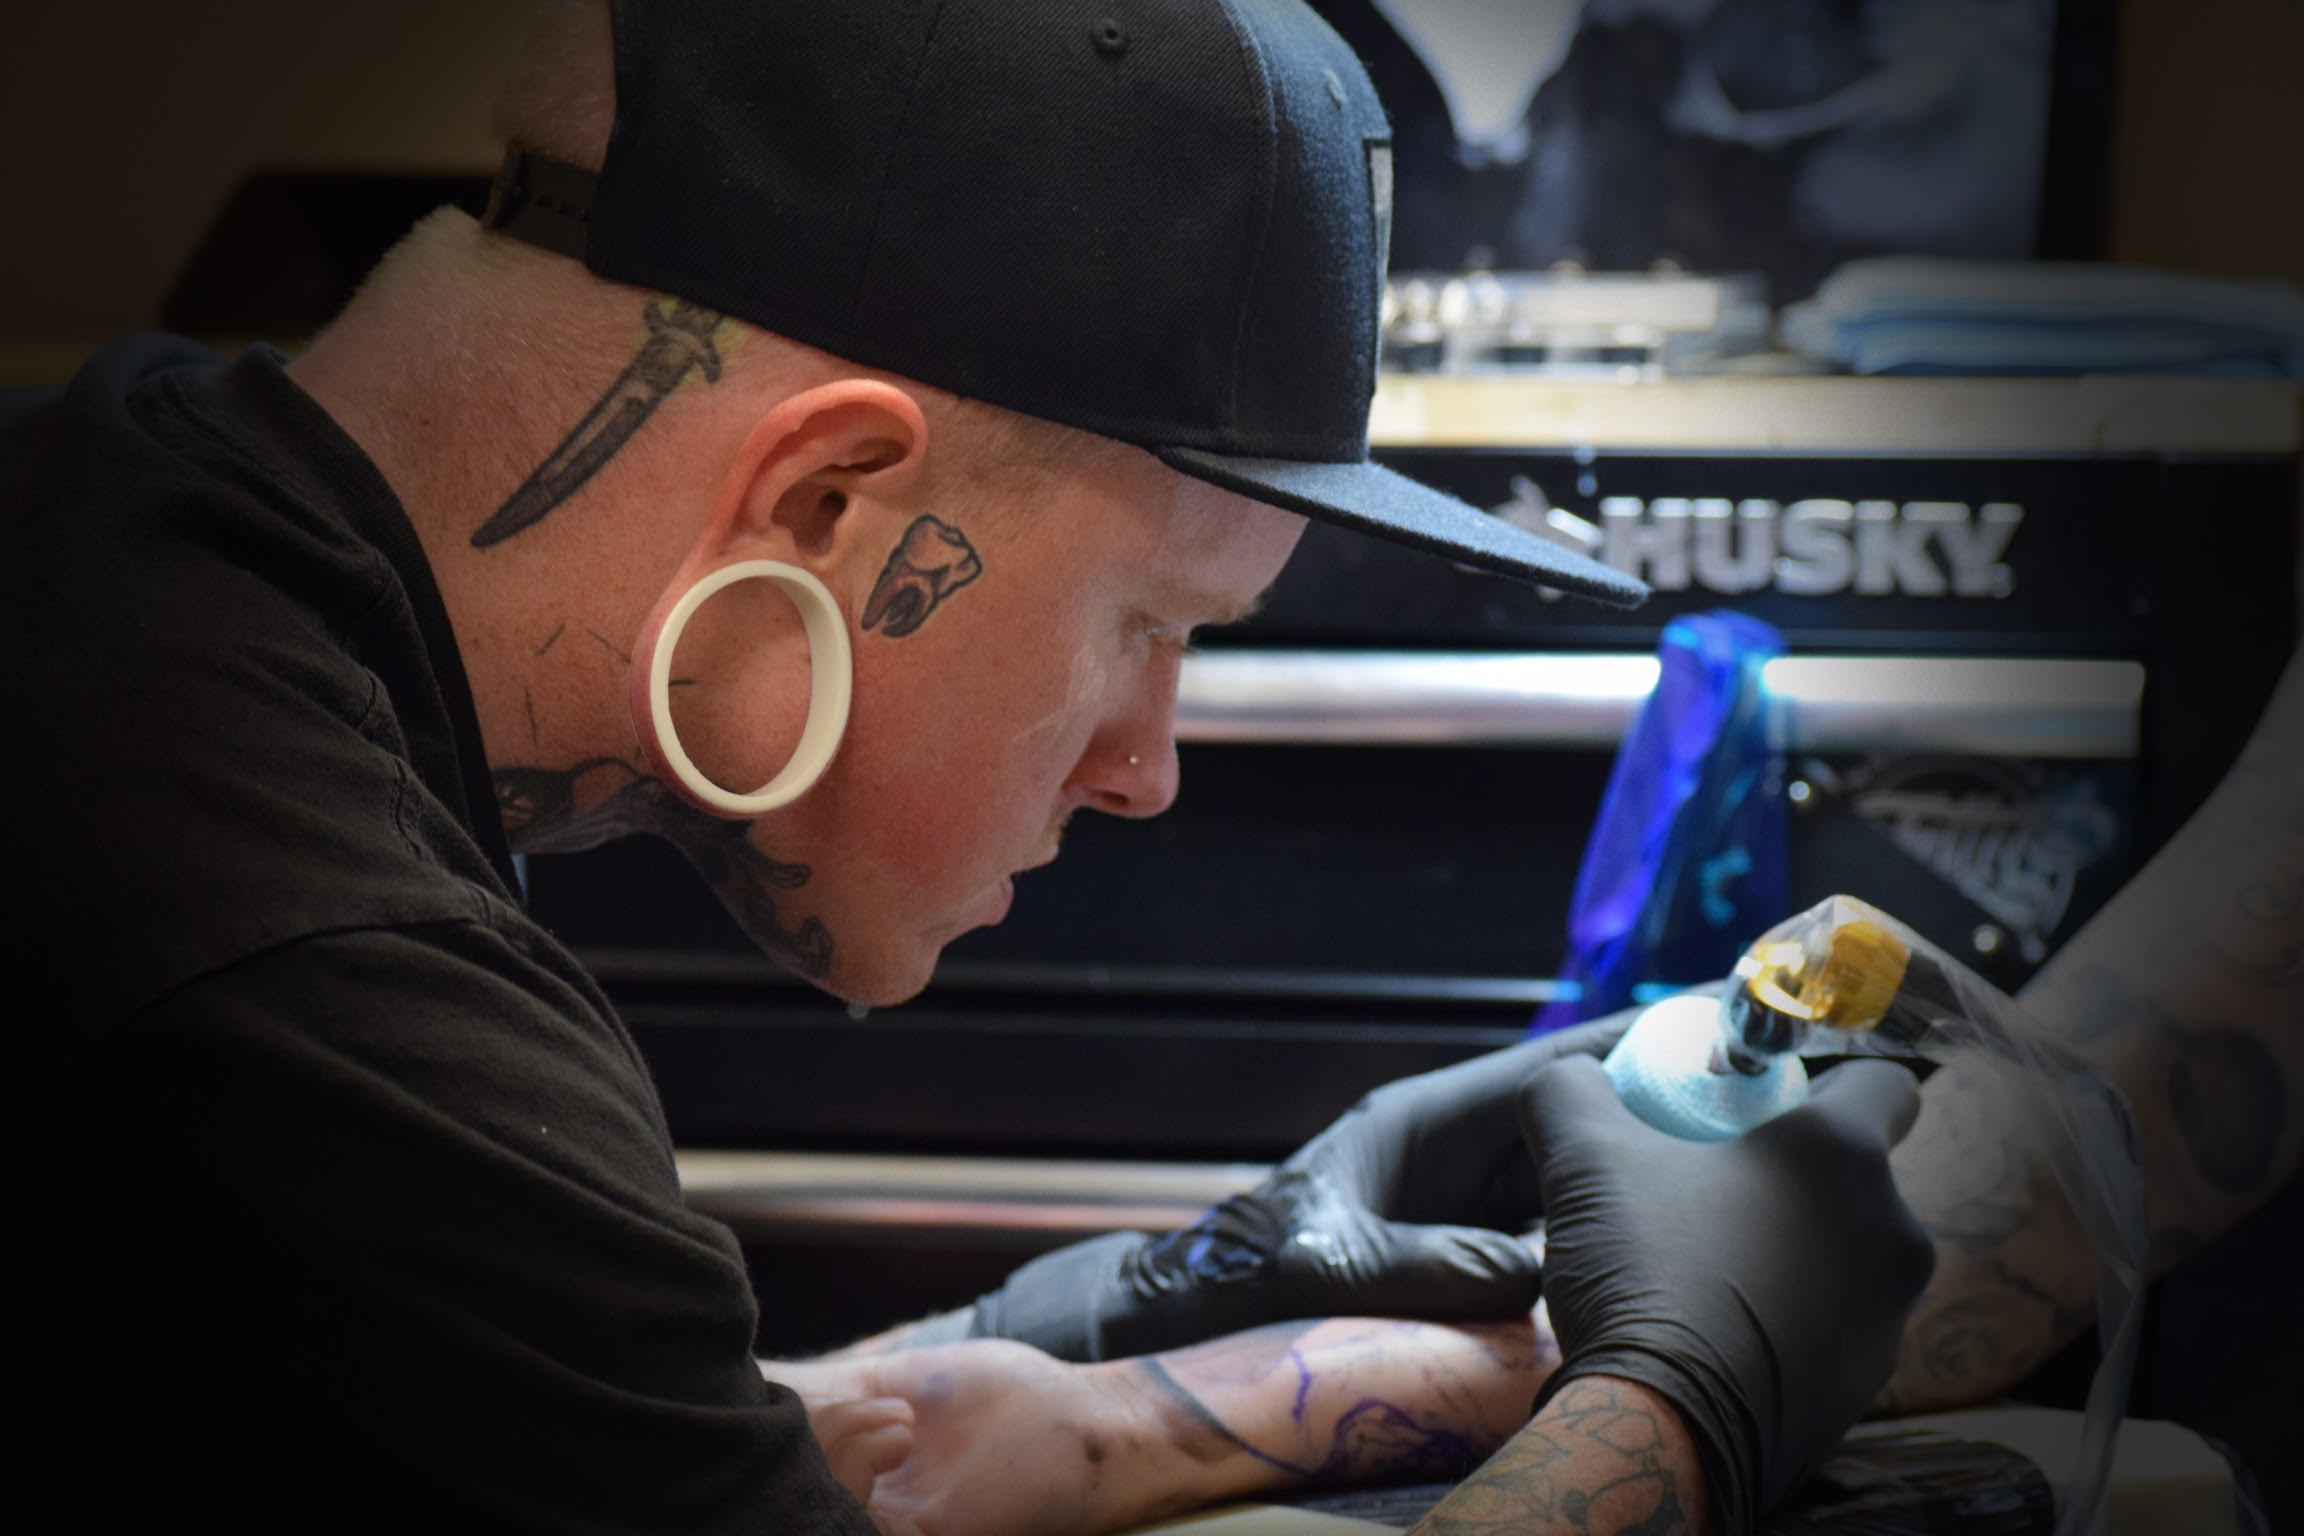 Dakota Case - Dakota is a Award winning artist specializing in color neo traditional, bold lines, and heavy saturation. Click on his photo to see his work!